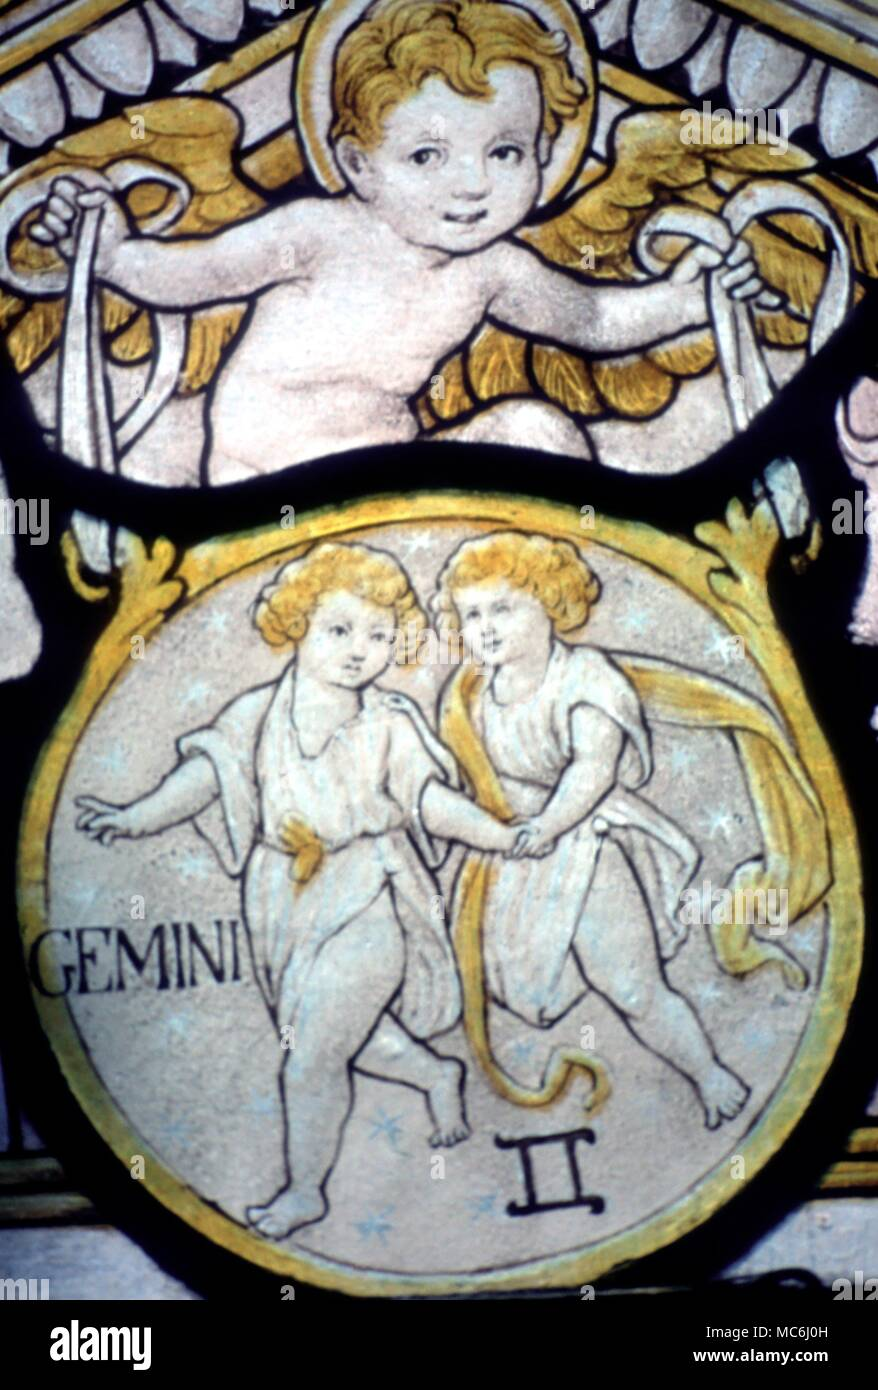 Zodiac Signs Gemini Stained glass image of Gemini the Twins